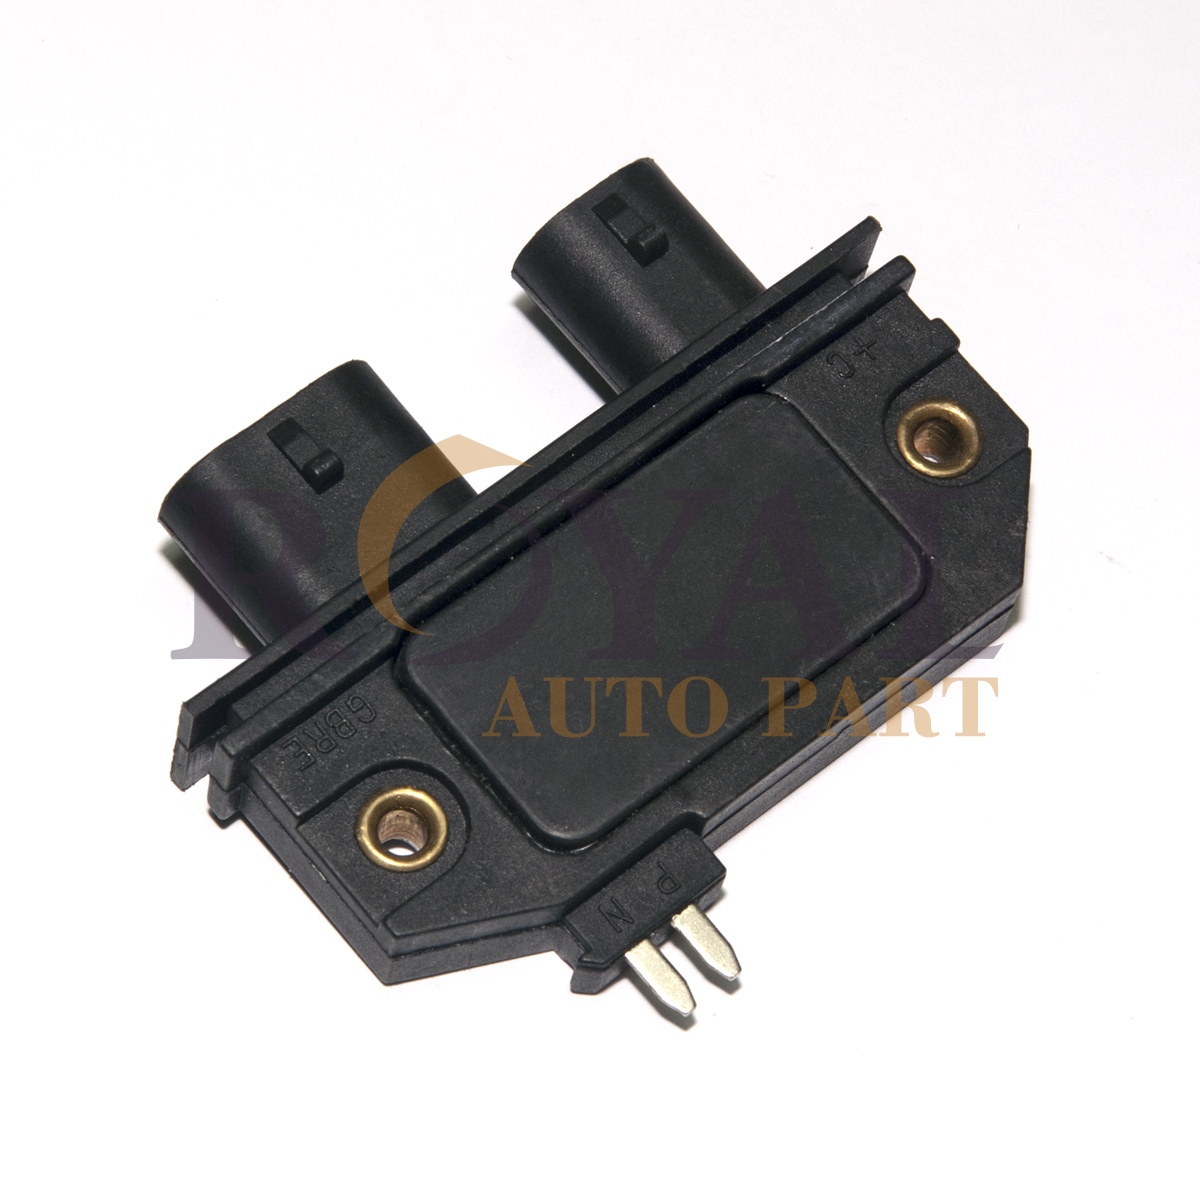 2000 Chevy 3500 Ignition Module